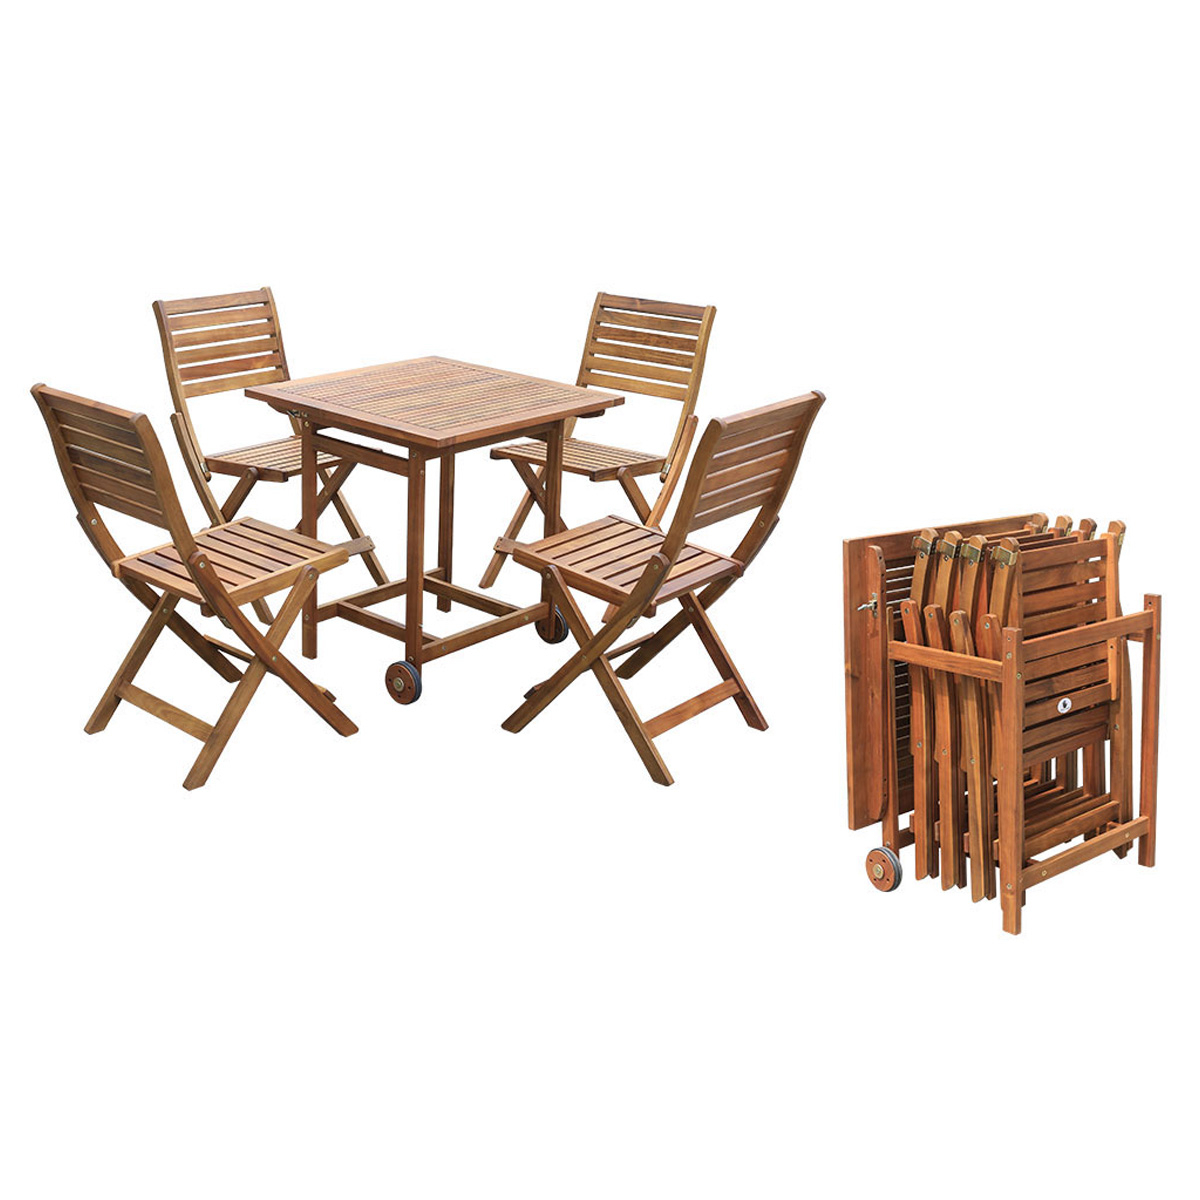 Linda Wooden Dining Set 4+1 Inside Outdoor Wicker Plastic Tear Porch Swings With Stand (View 23 of 25)